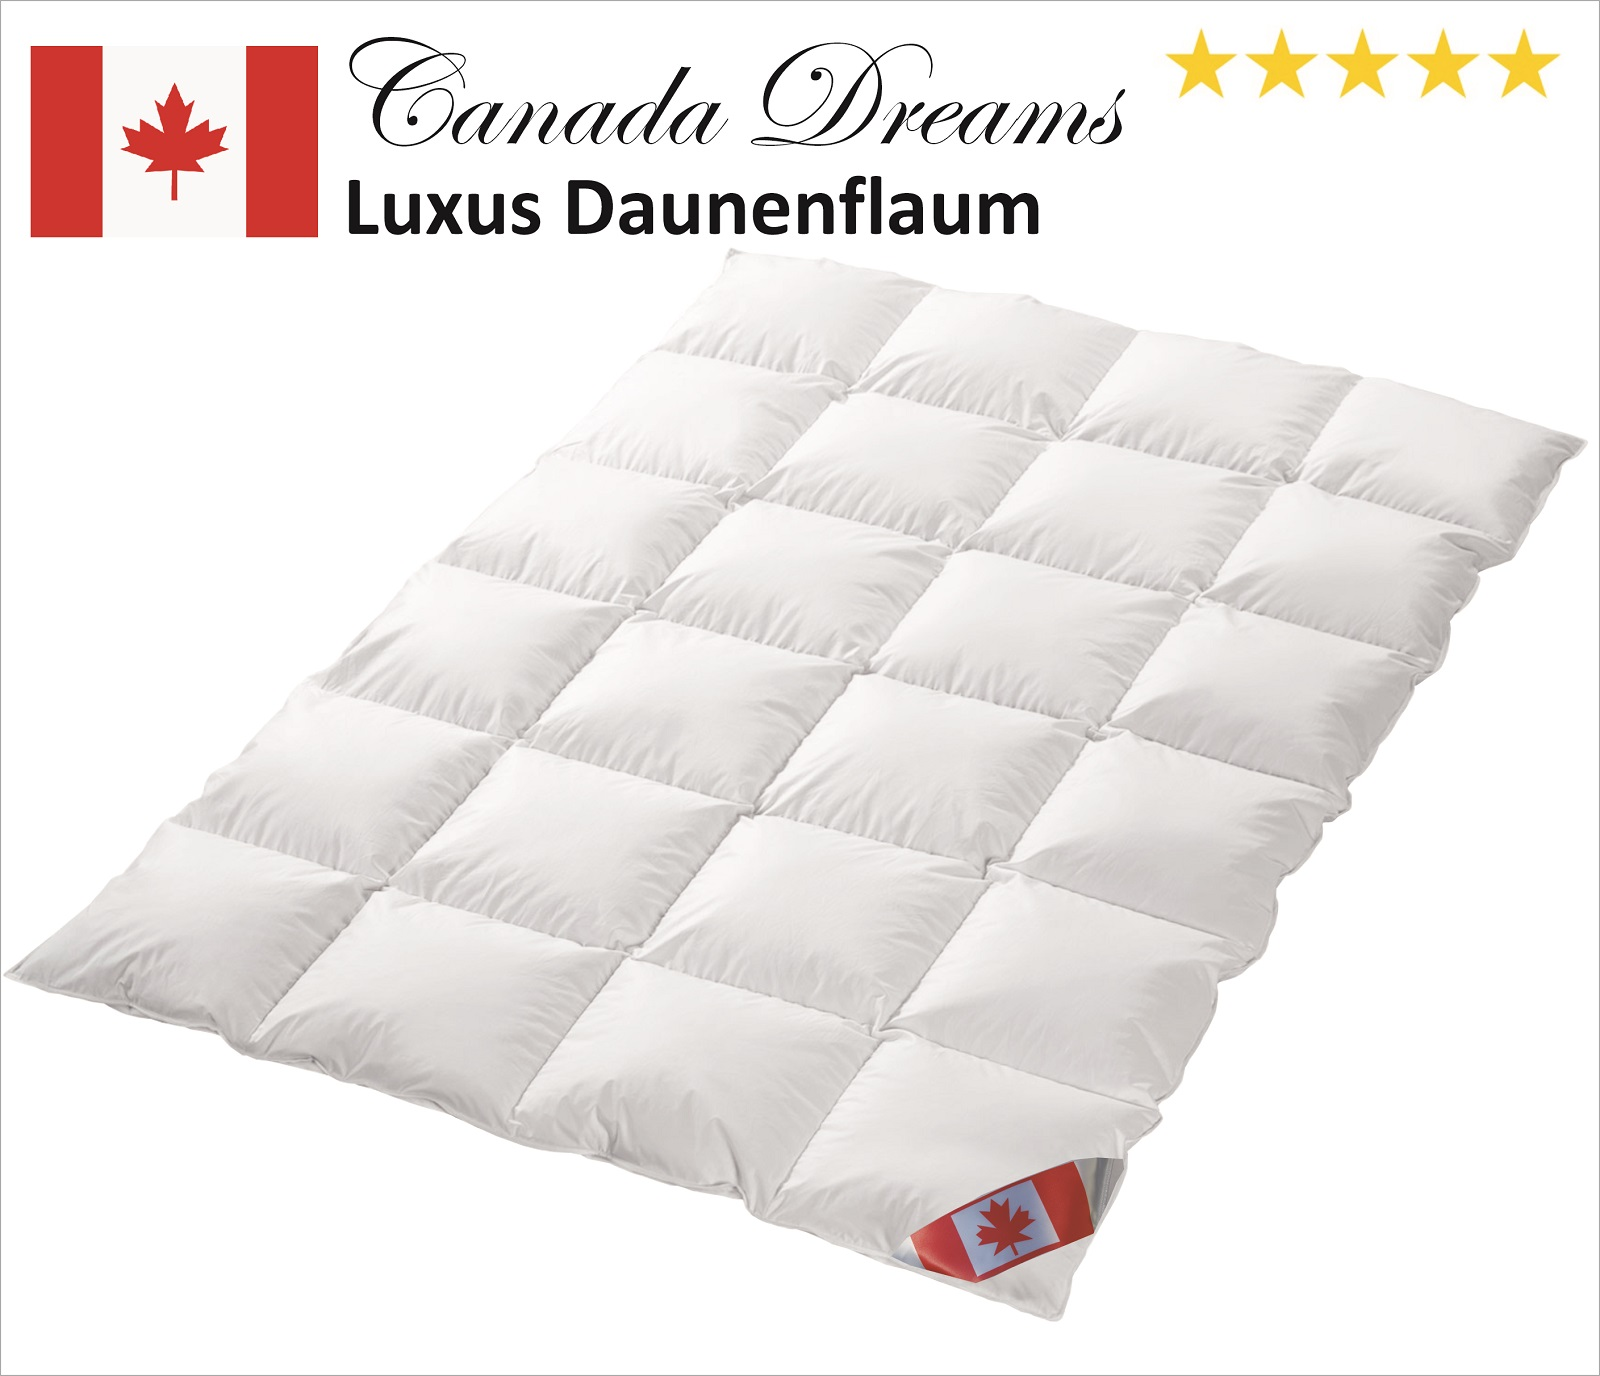 Canada Dreams Luxus Winter Daunendecke PLUS Wärmegrad 4 240x220 cm